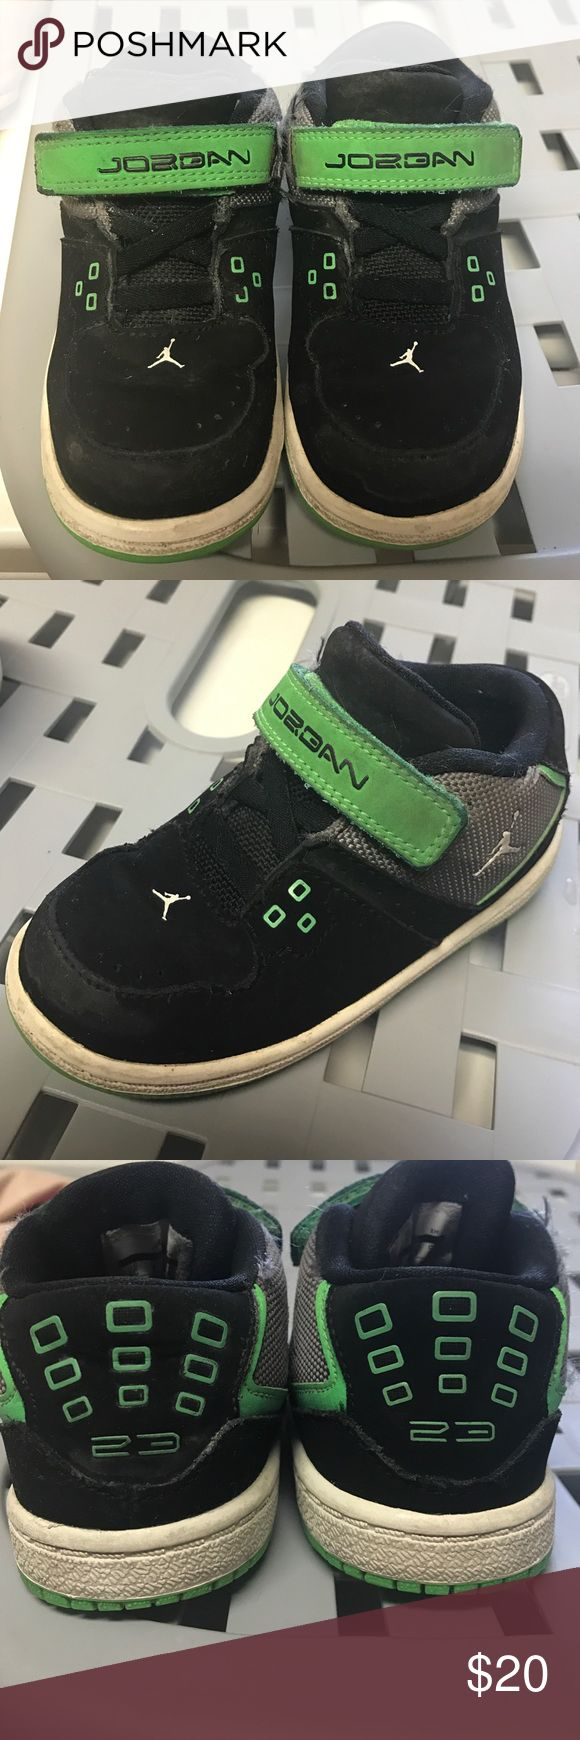 Jordan's Selling these heavily used jordans for kids. They deffinately have some wear to them but they can be used to be in the house, or messy days at the park. The only reason I'm selling them is because they don't fit my son anymore. Open to offers ☺ Jordan Shoes Sneakers